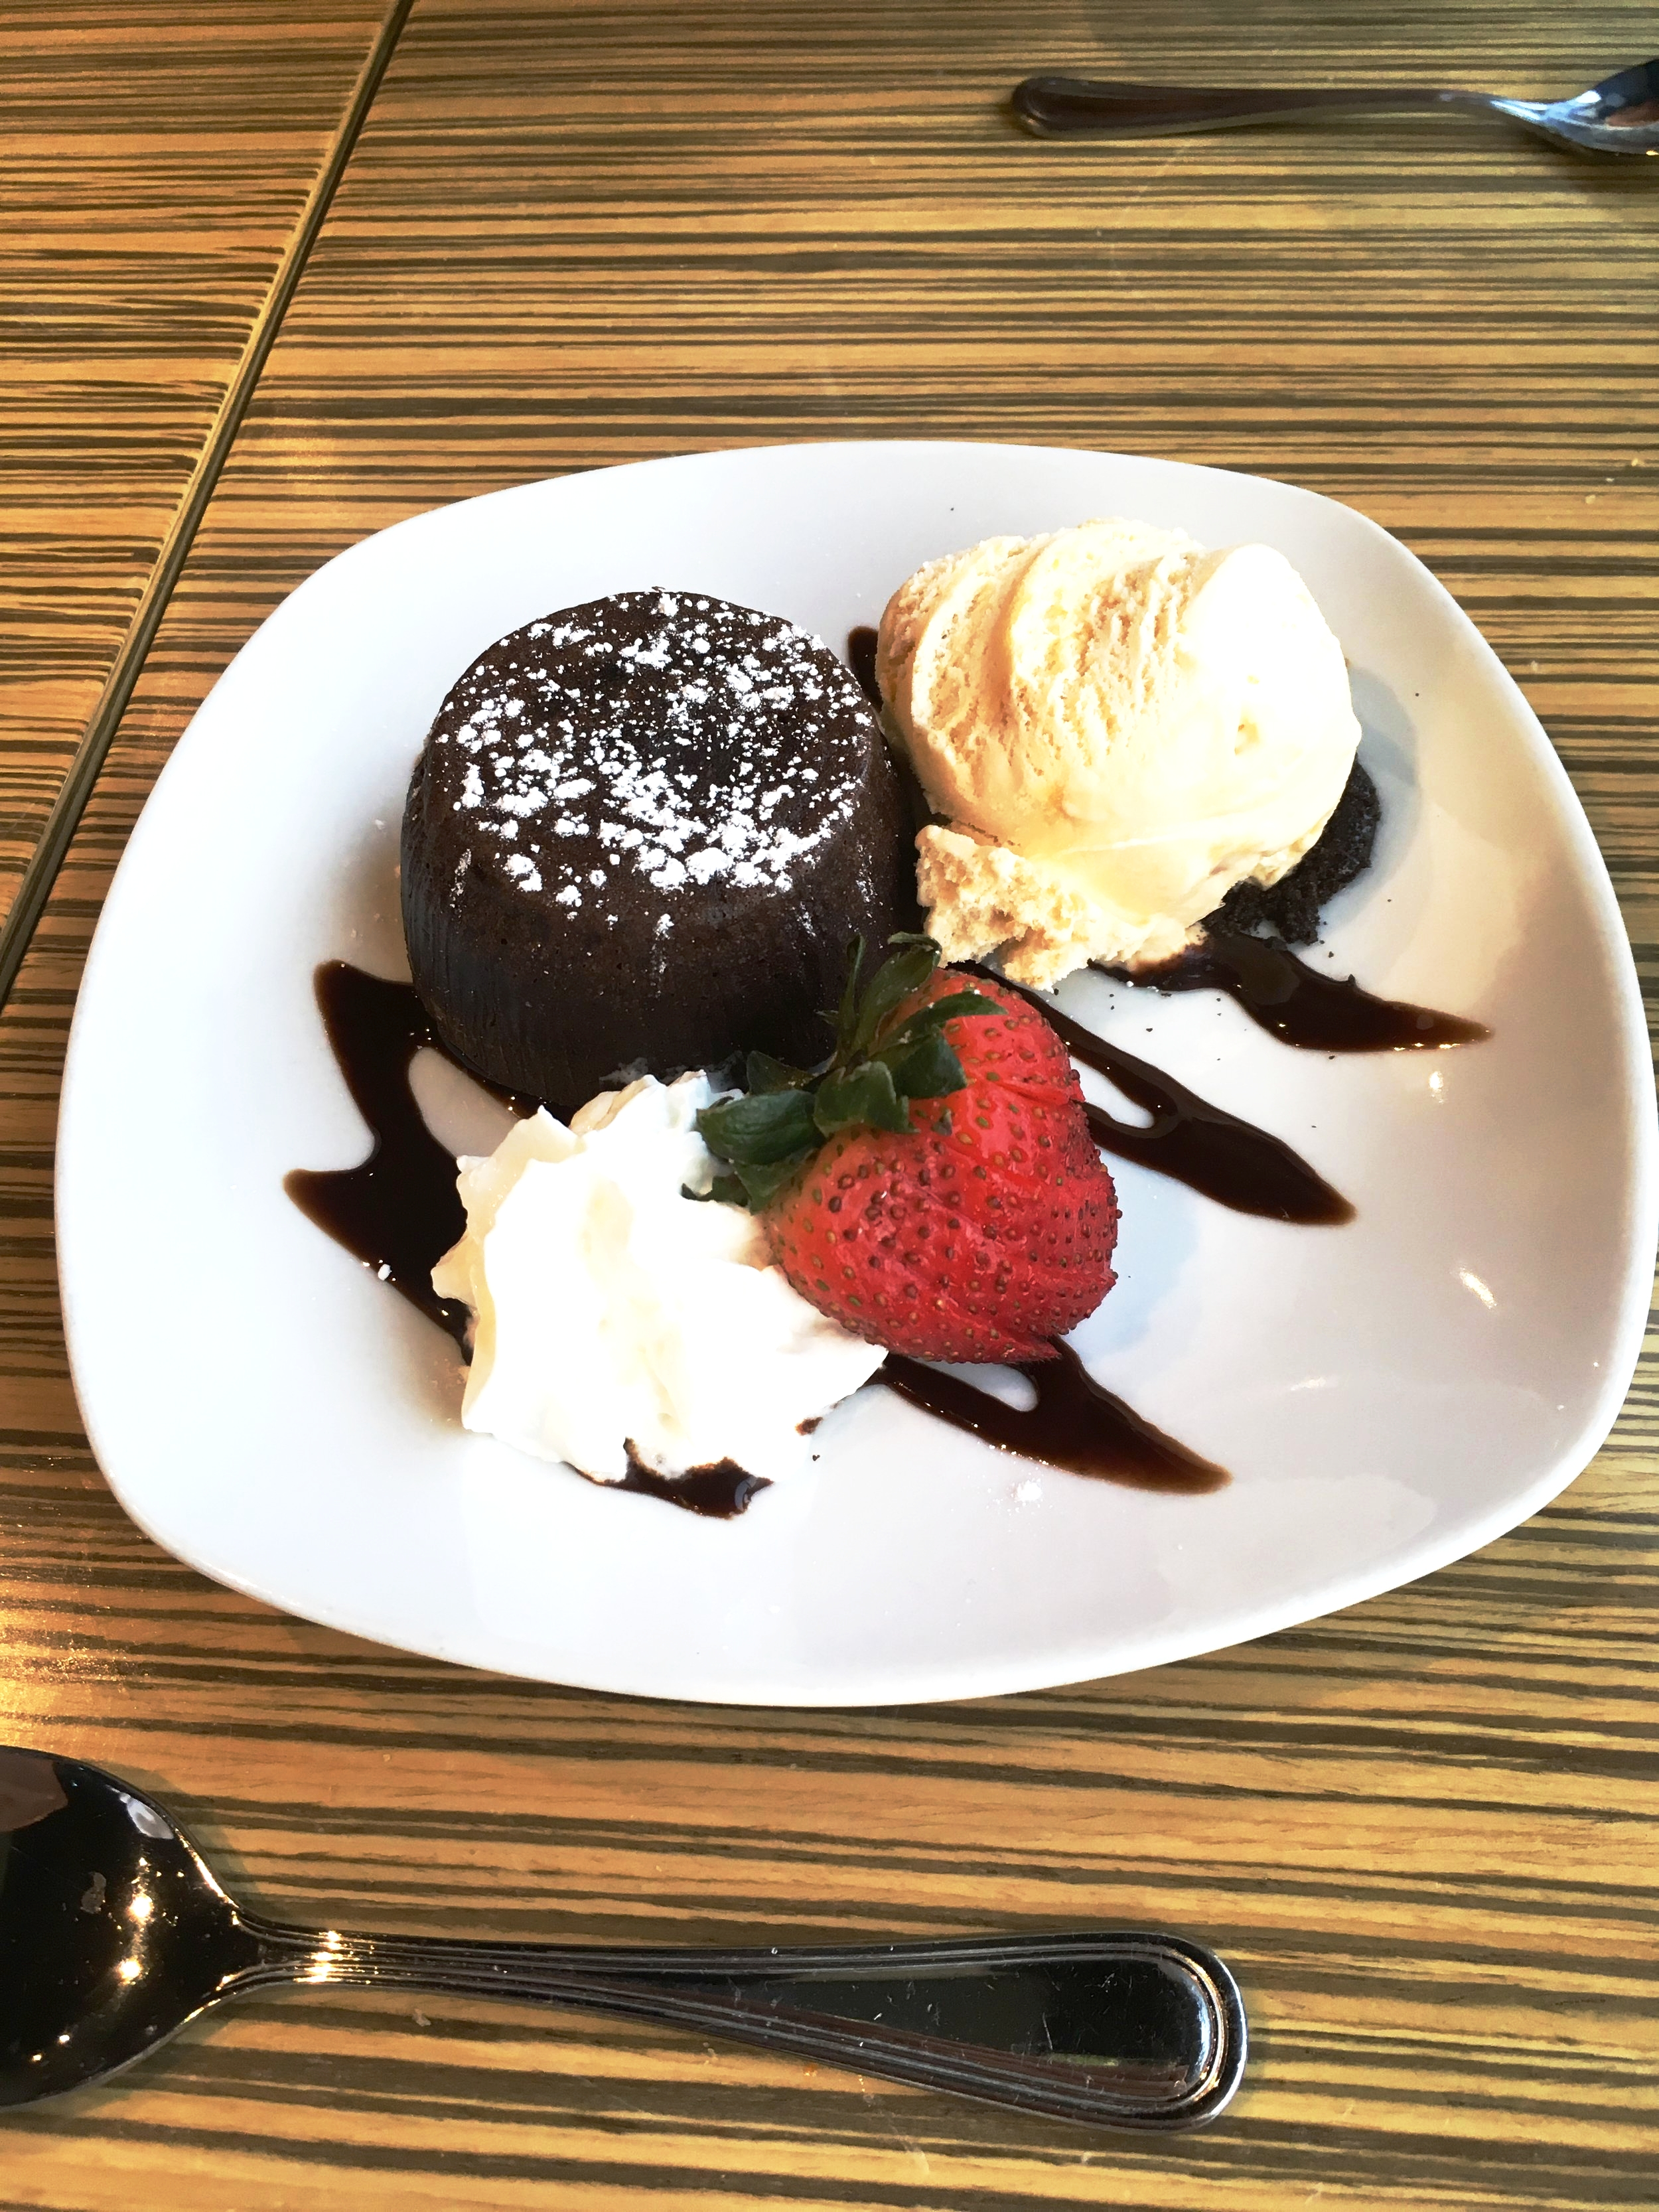 ConnSocials ONLY posts firsthand photos. So yes, this IS the actual lava cake. /drools.